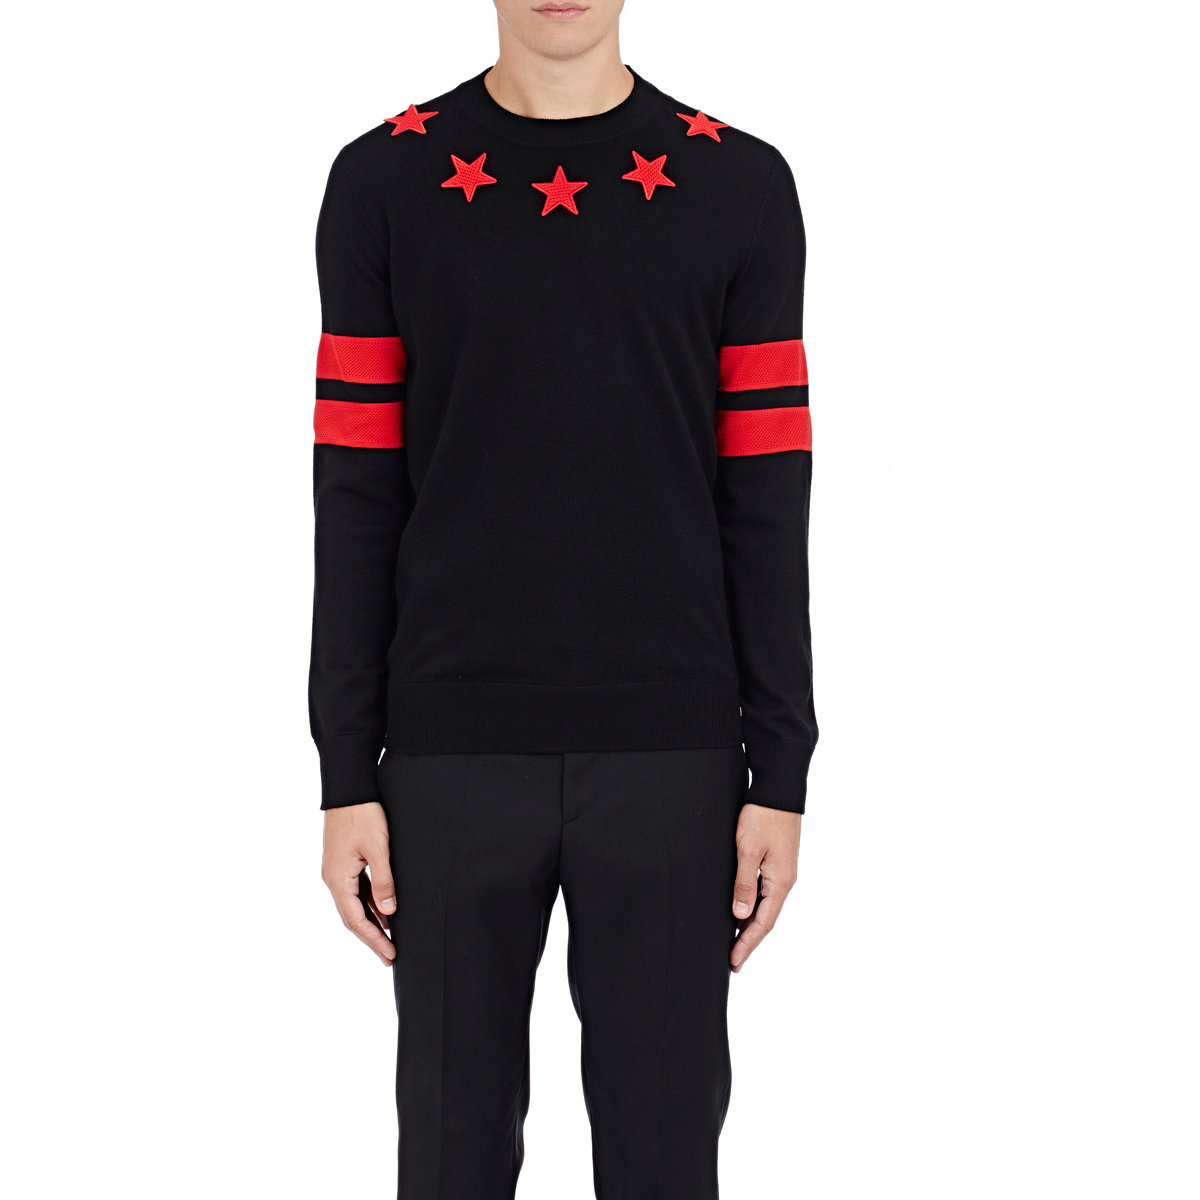 Lyst - Givenchy Stars   Stripes Sweater in Black for Men 96faf5ead